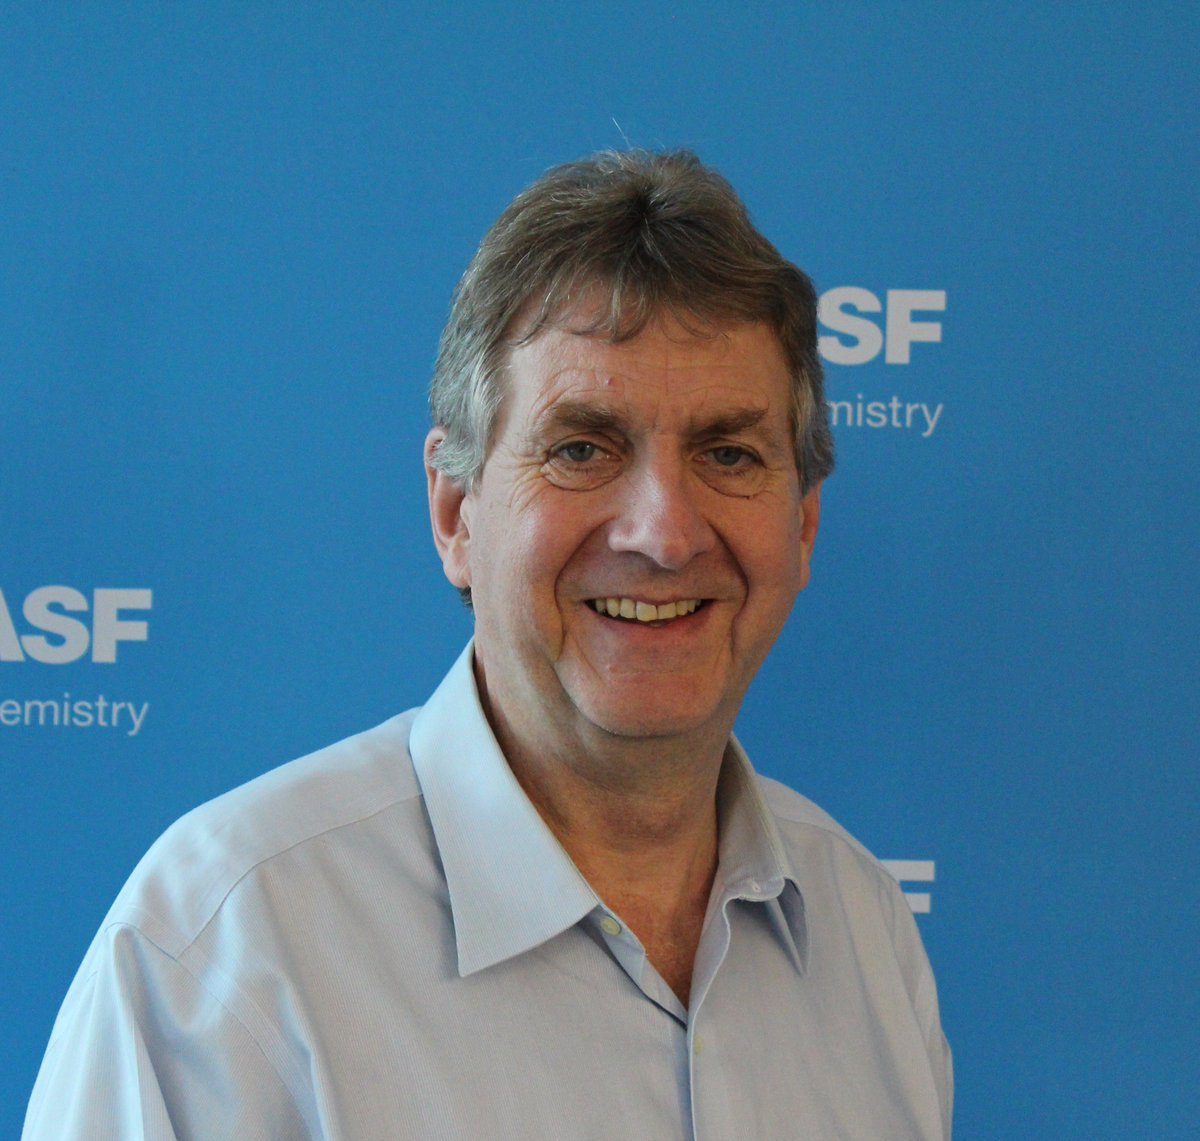 Desk Or Chemical Plant Relatively Speaking I Have Lots Of Freedom Basf Colleague Rob Parry Told Us About His Job And Why He Enjoys It